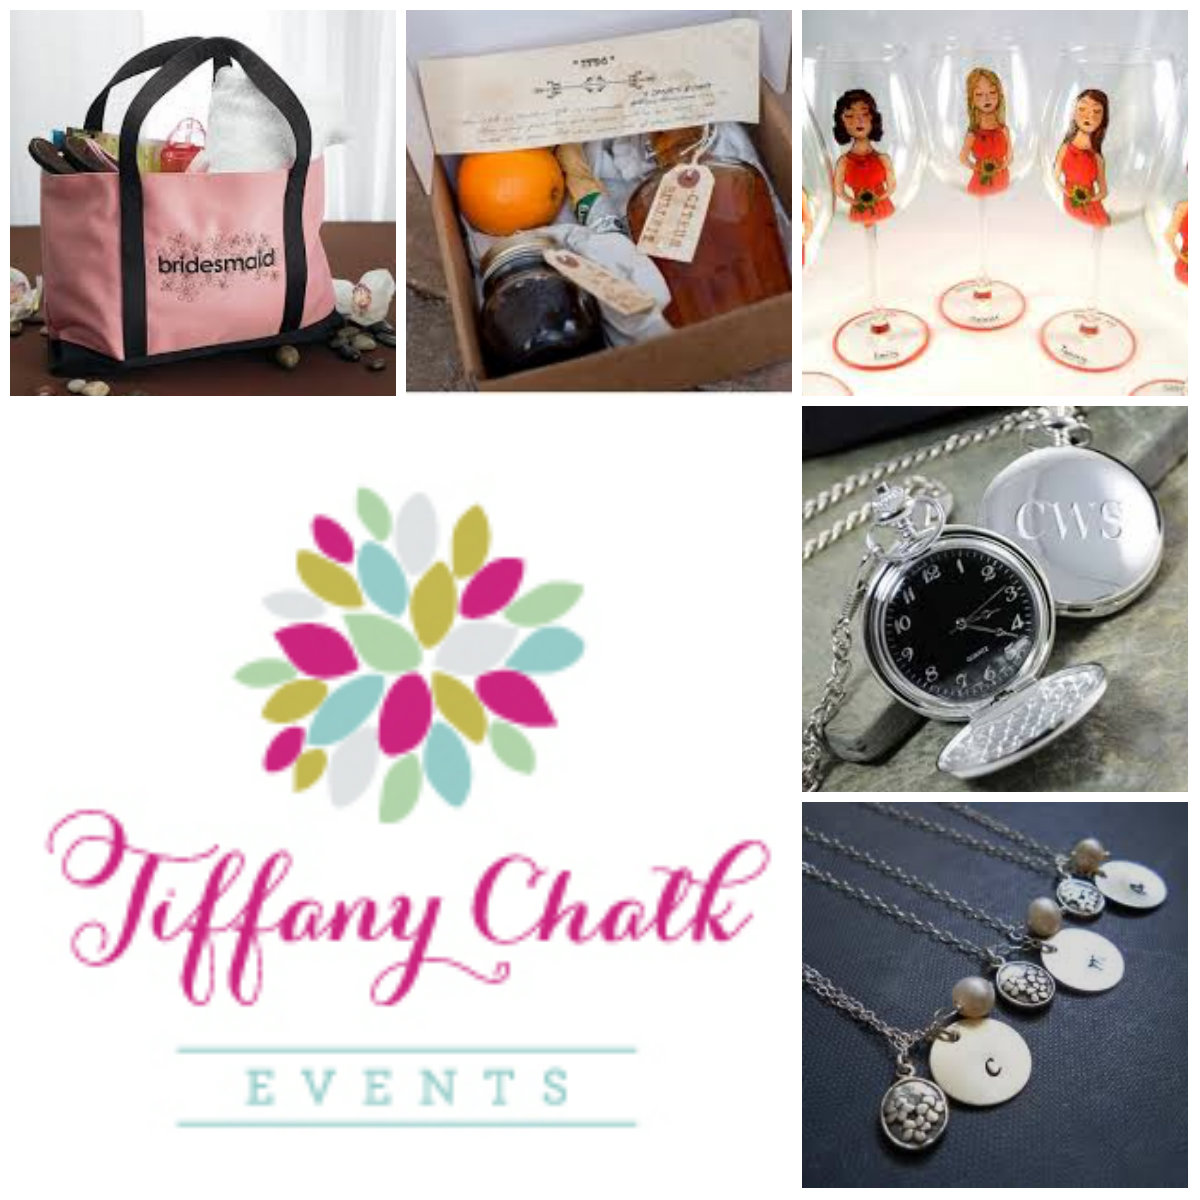 Wedding Wednesday} Gifts for Your Attendants Tiffany Chalk Events